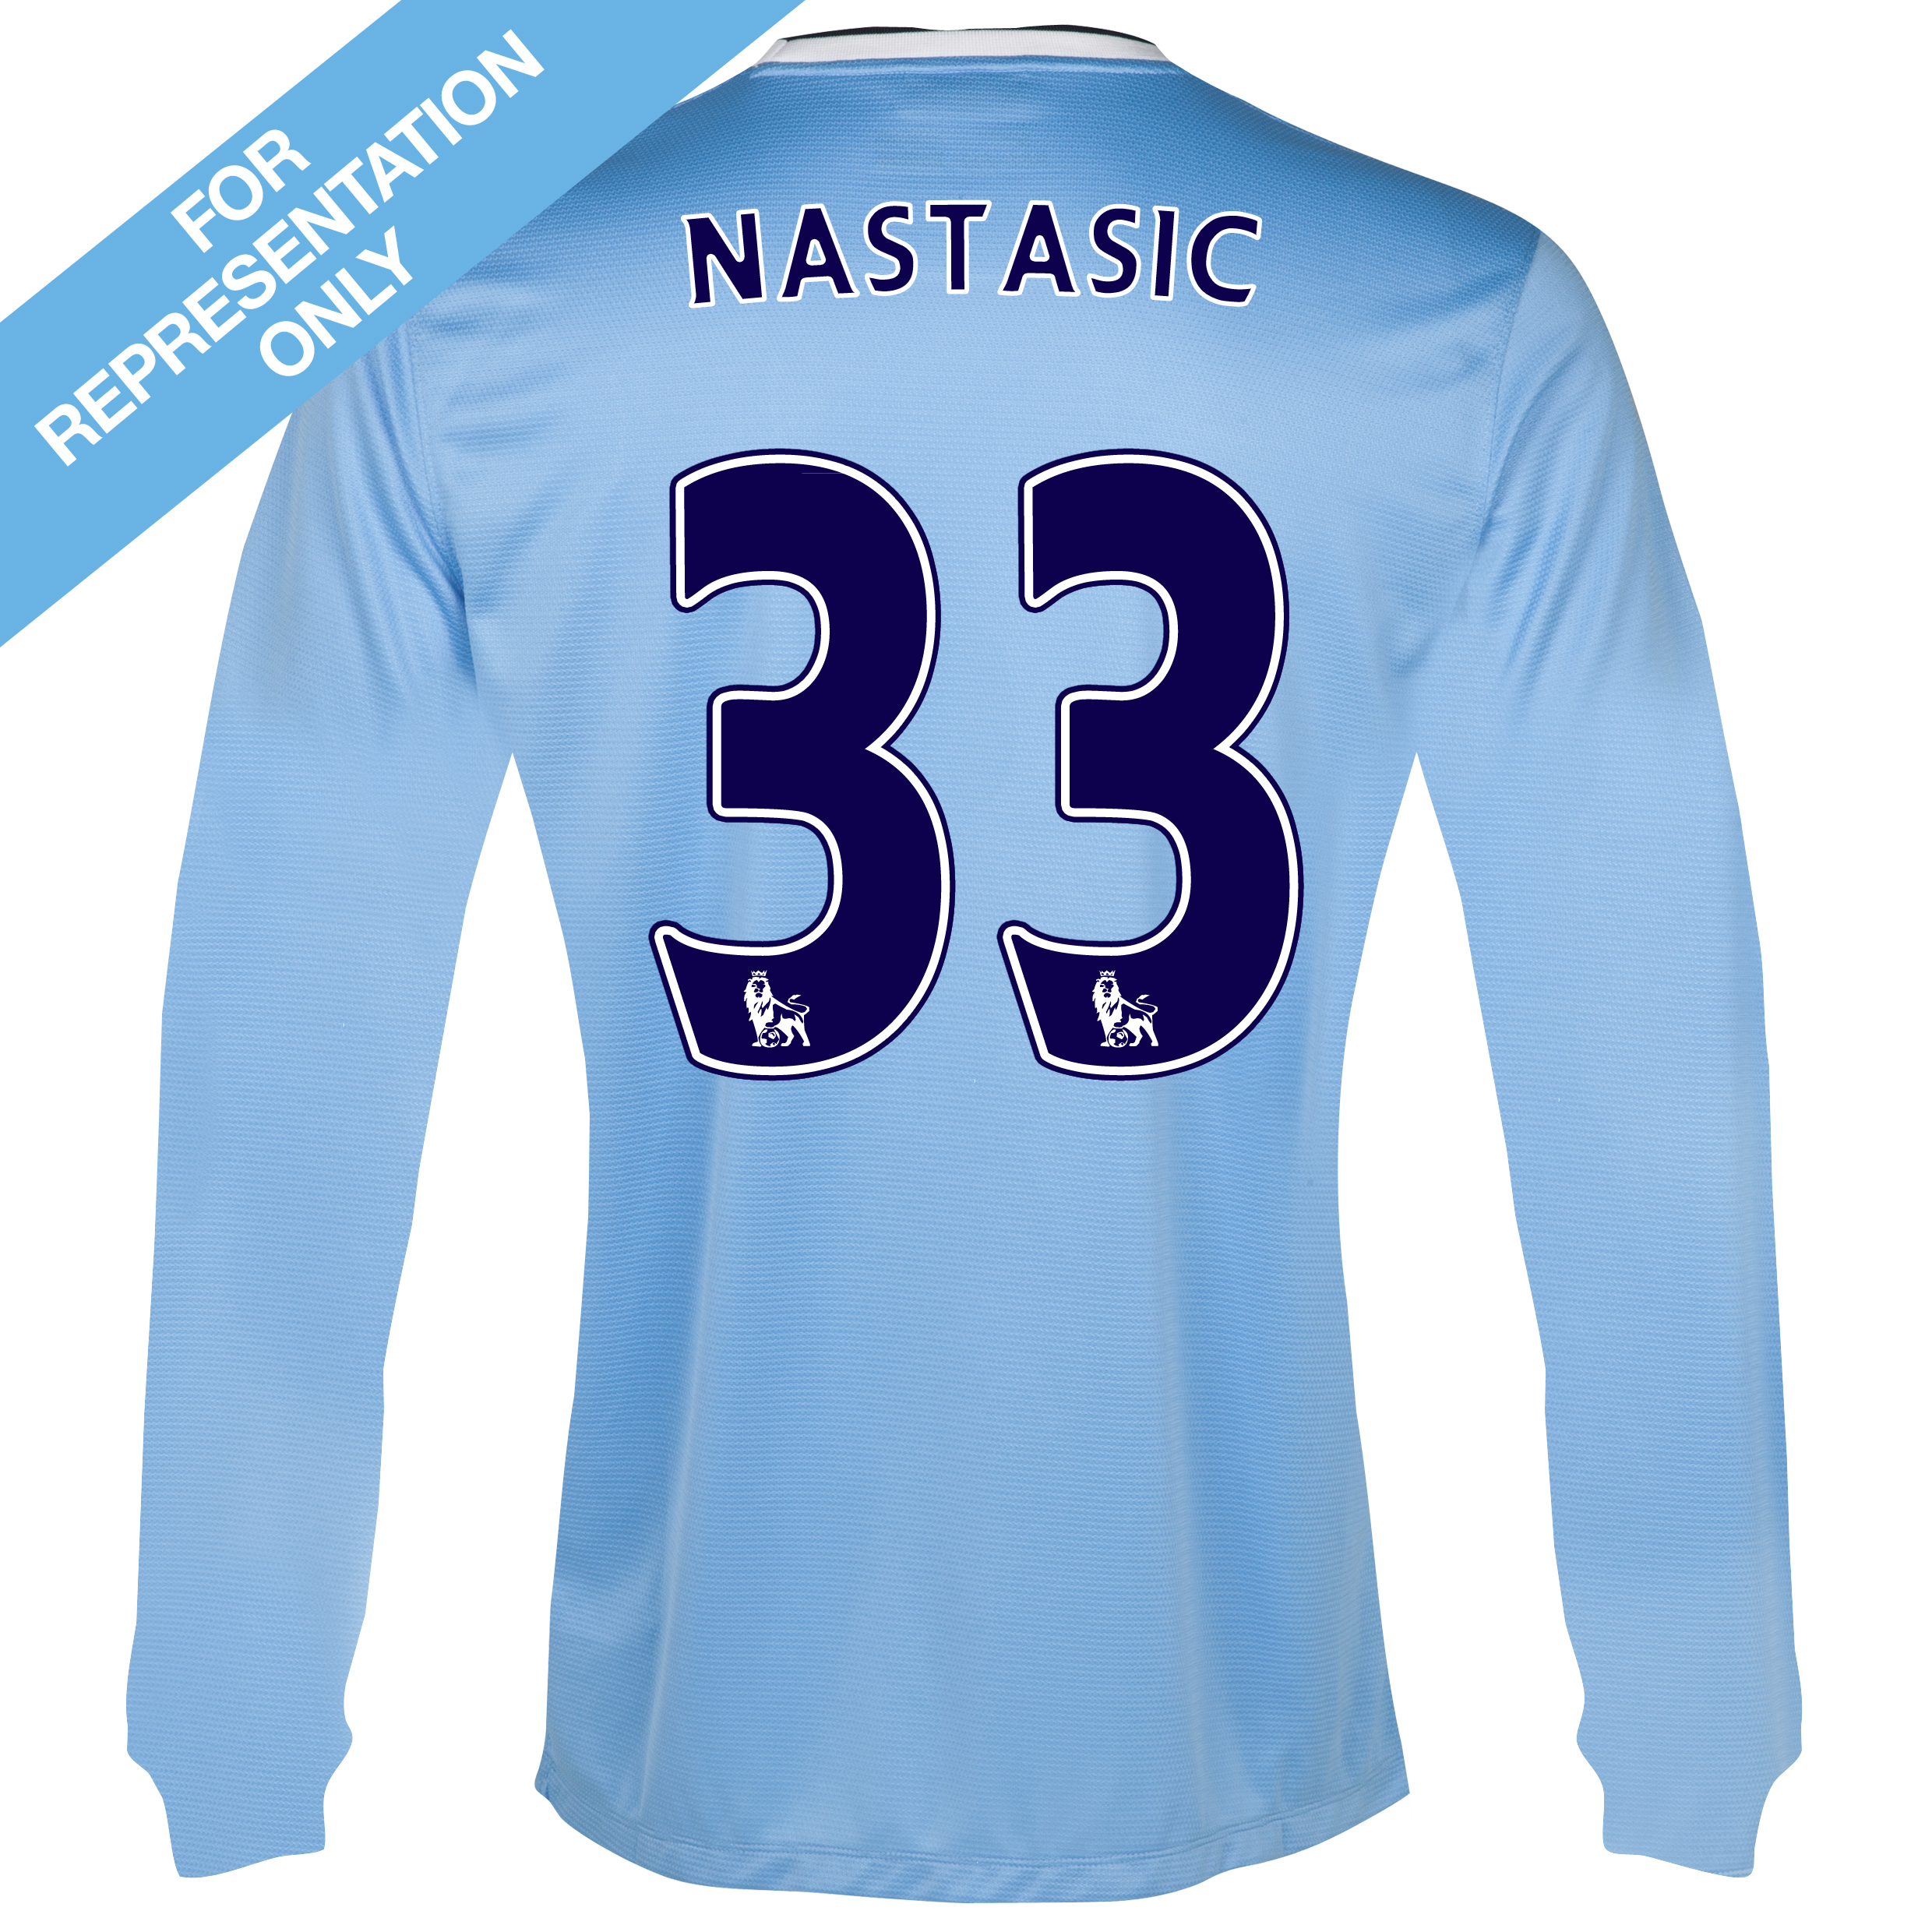 Manchester City Home Shirt 2013/14 - Long Sleeved with Nastasic 33 printing